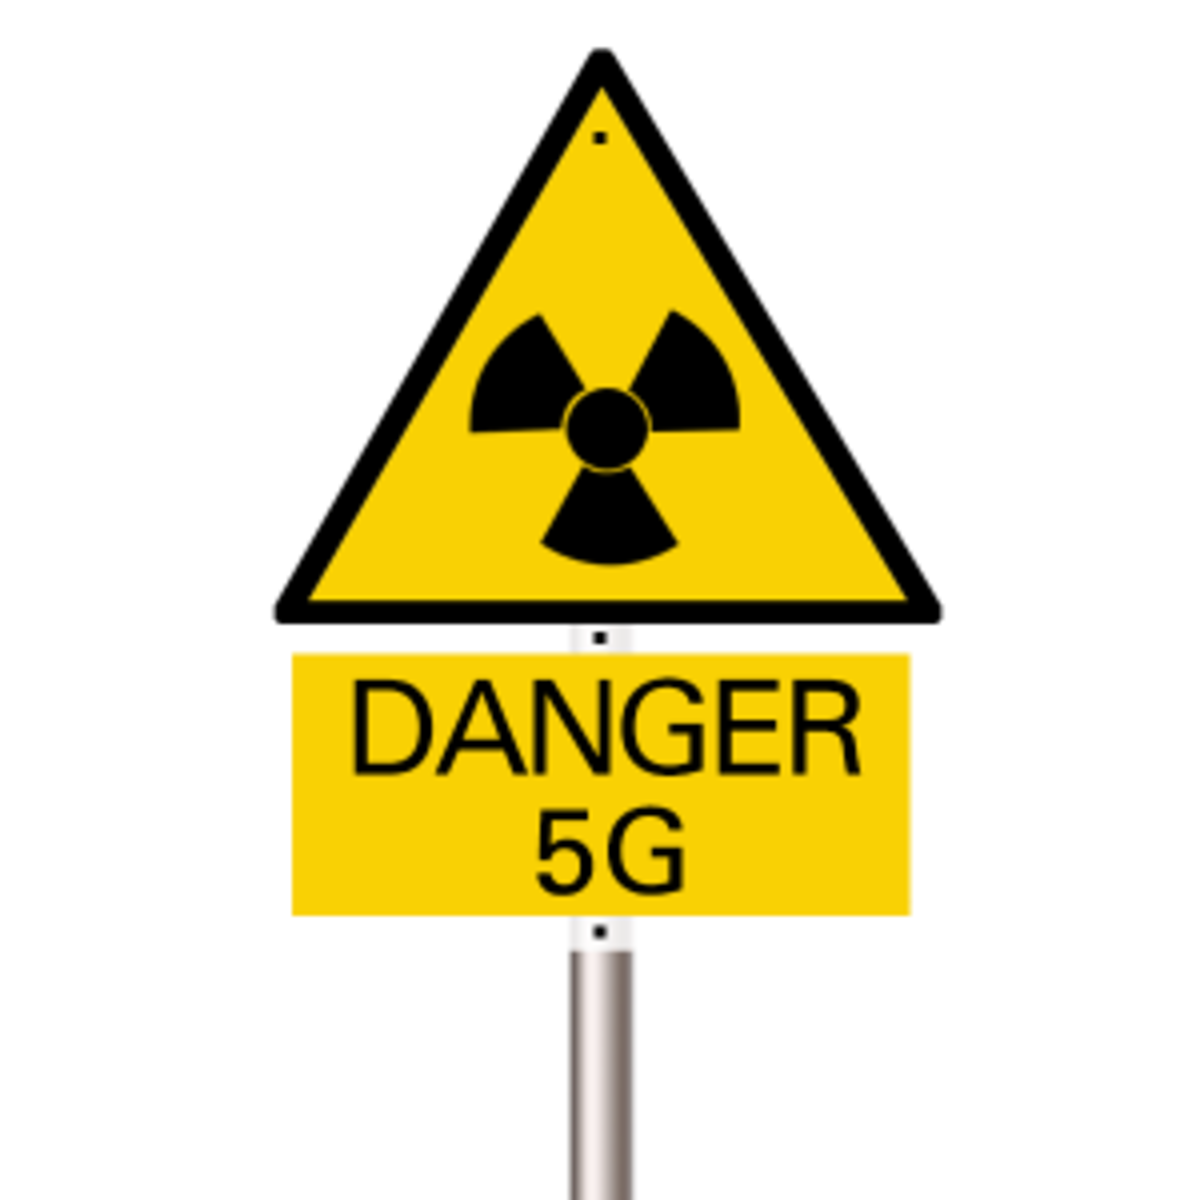 Are 5G Wireless Networks Safe?  The Dangers of 5G EMFs